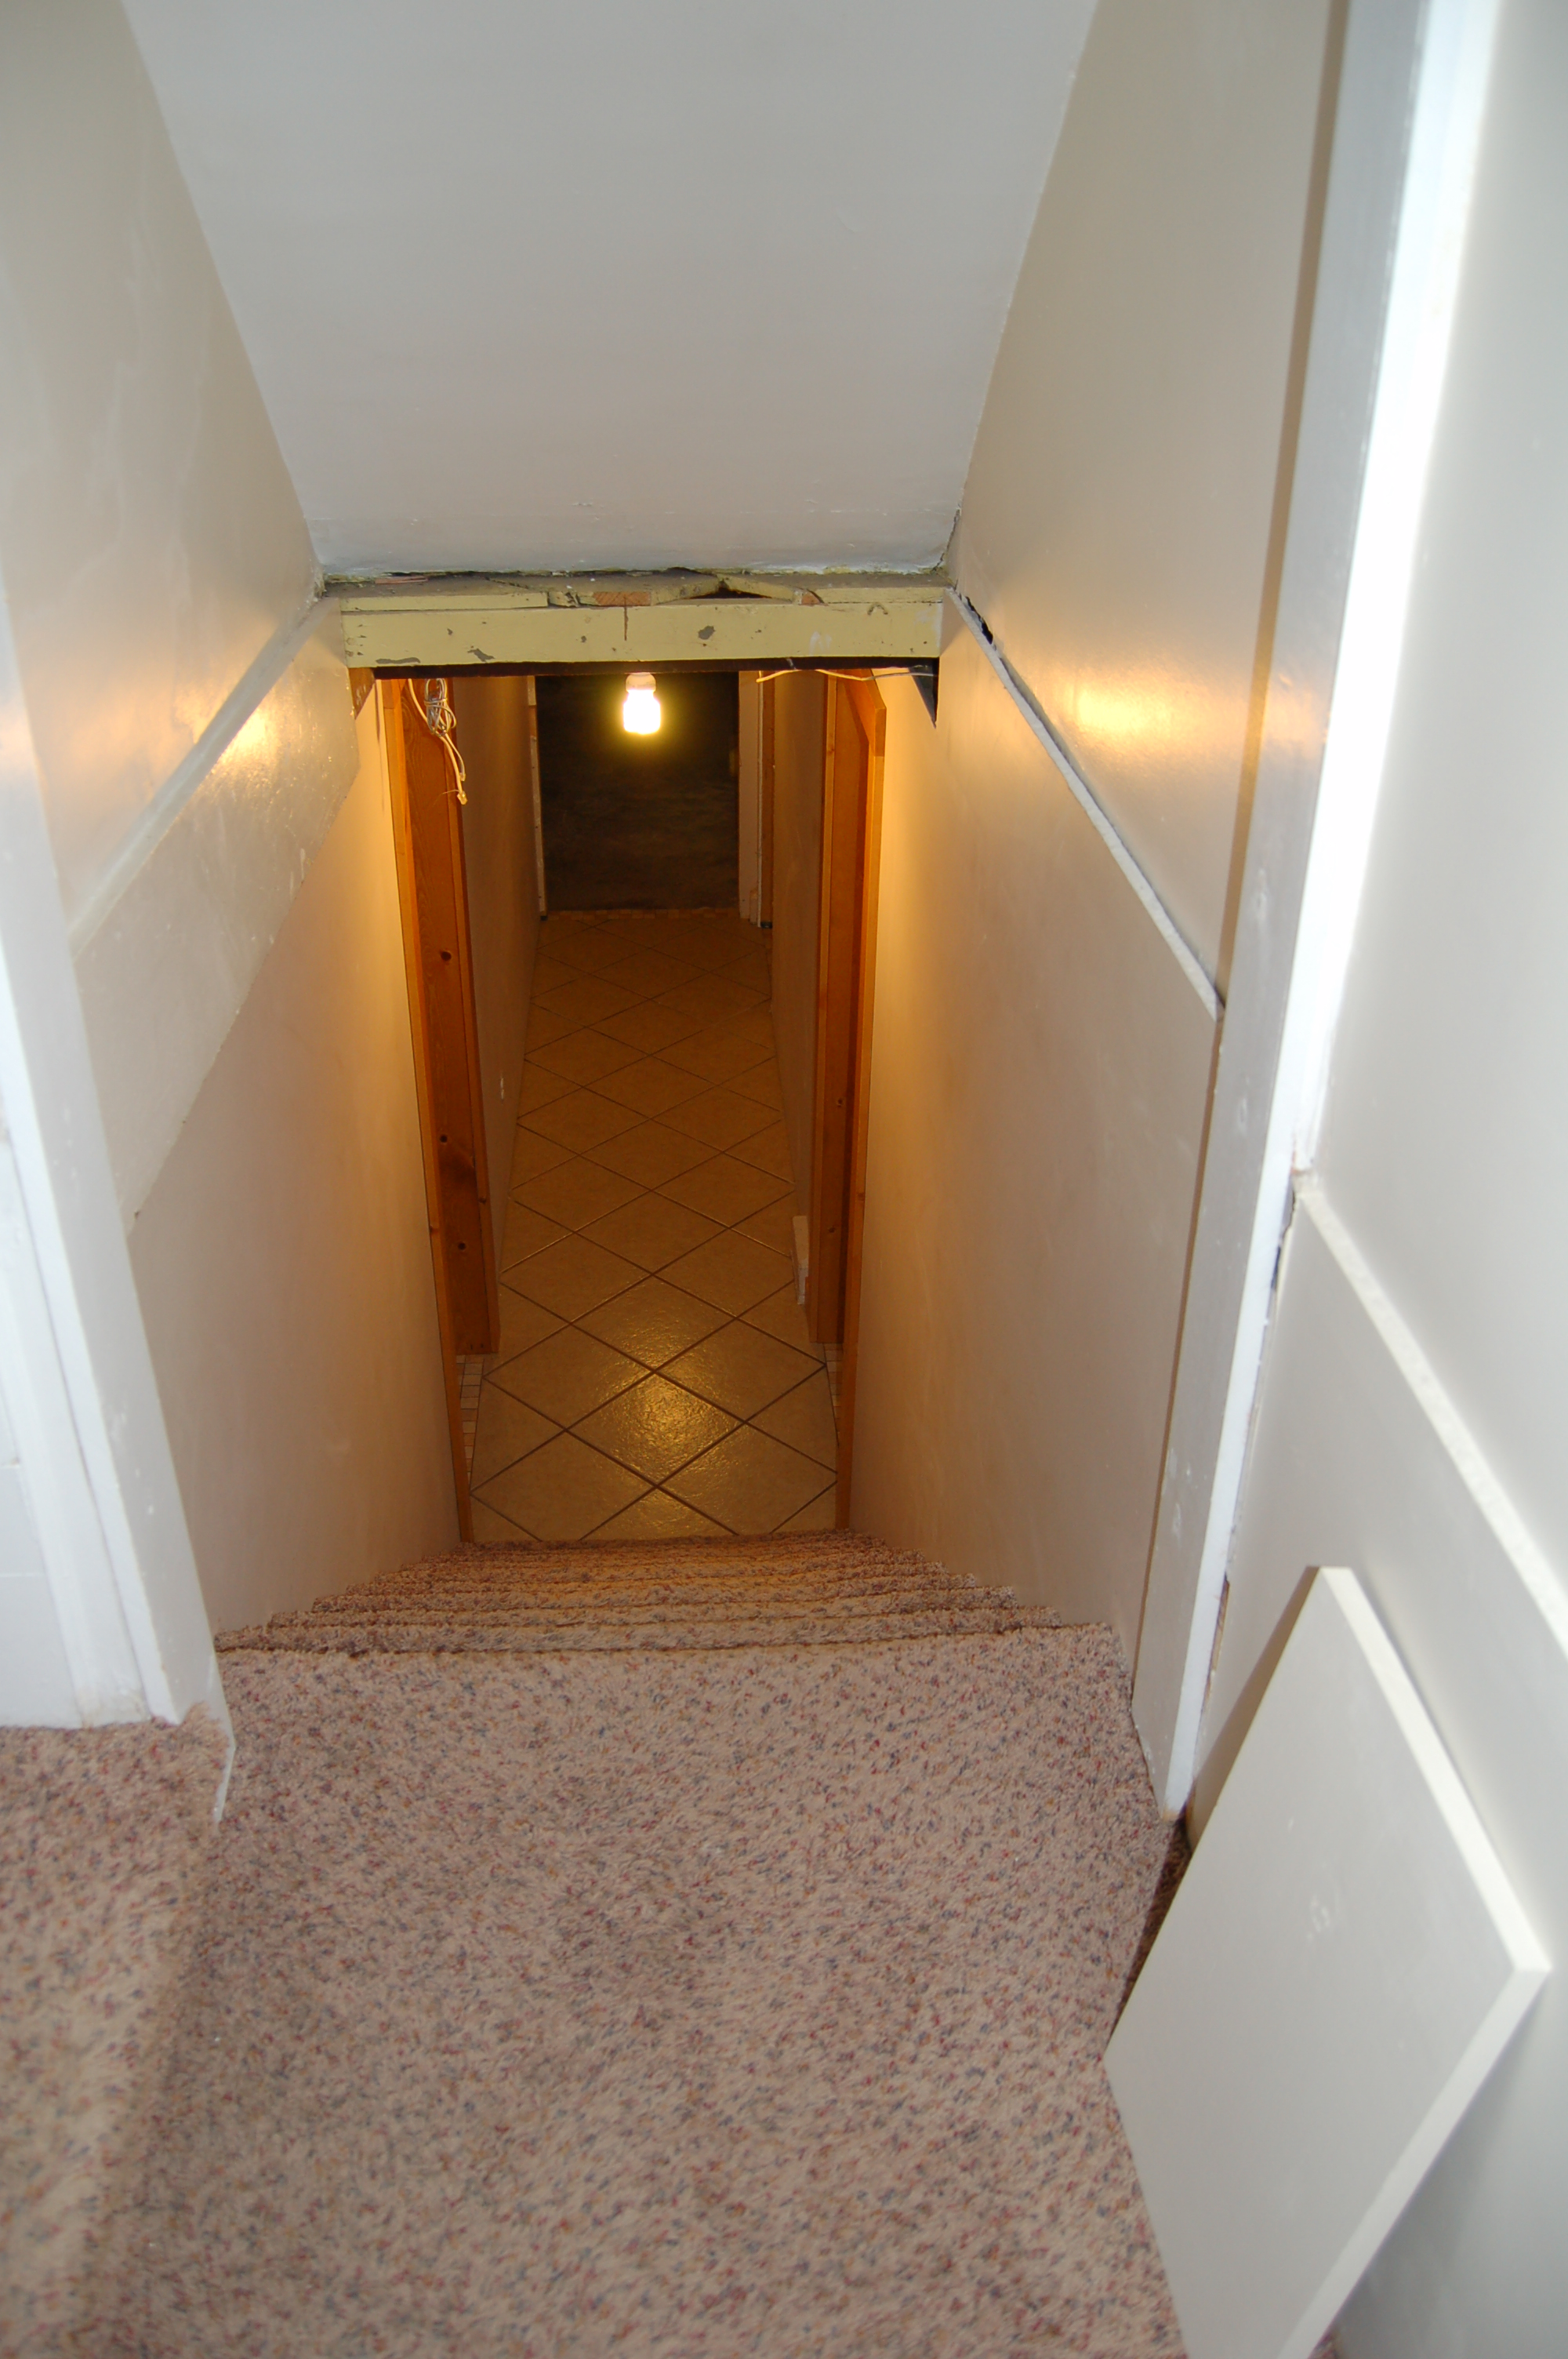 Looking Downstairs into Basement